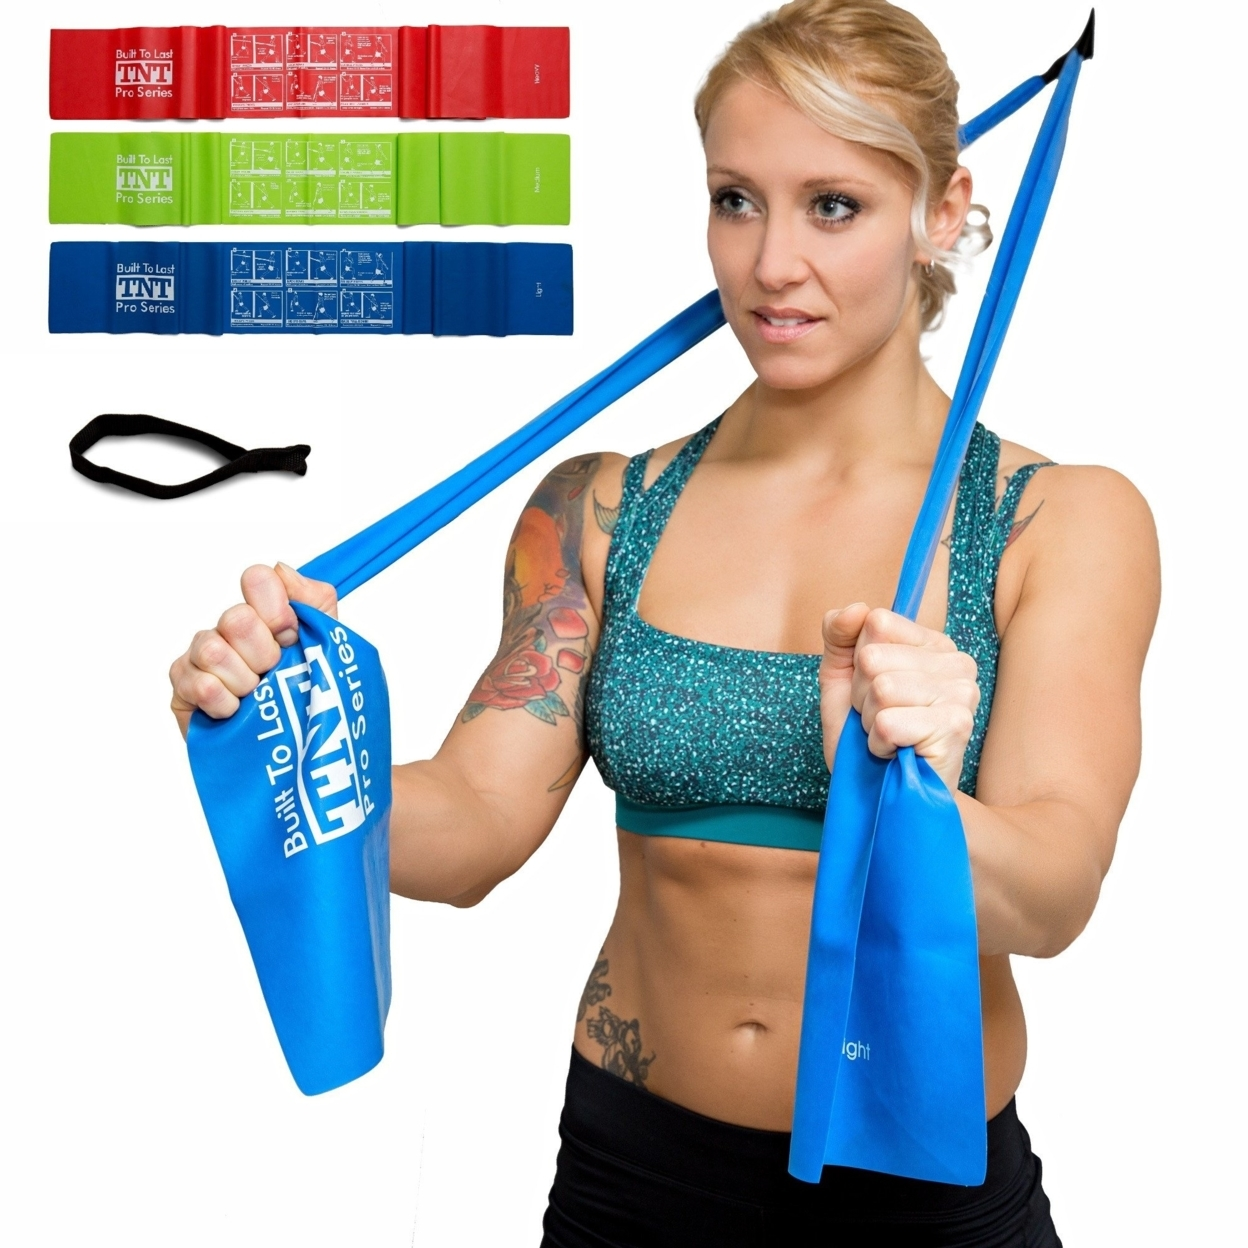 TNT Pro Series Exercise Stretch Bands With Door Anchor 5911e0e7c98fc458b6426b47